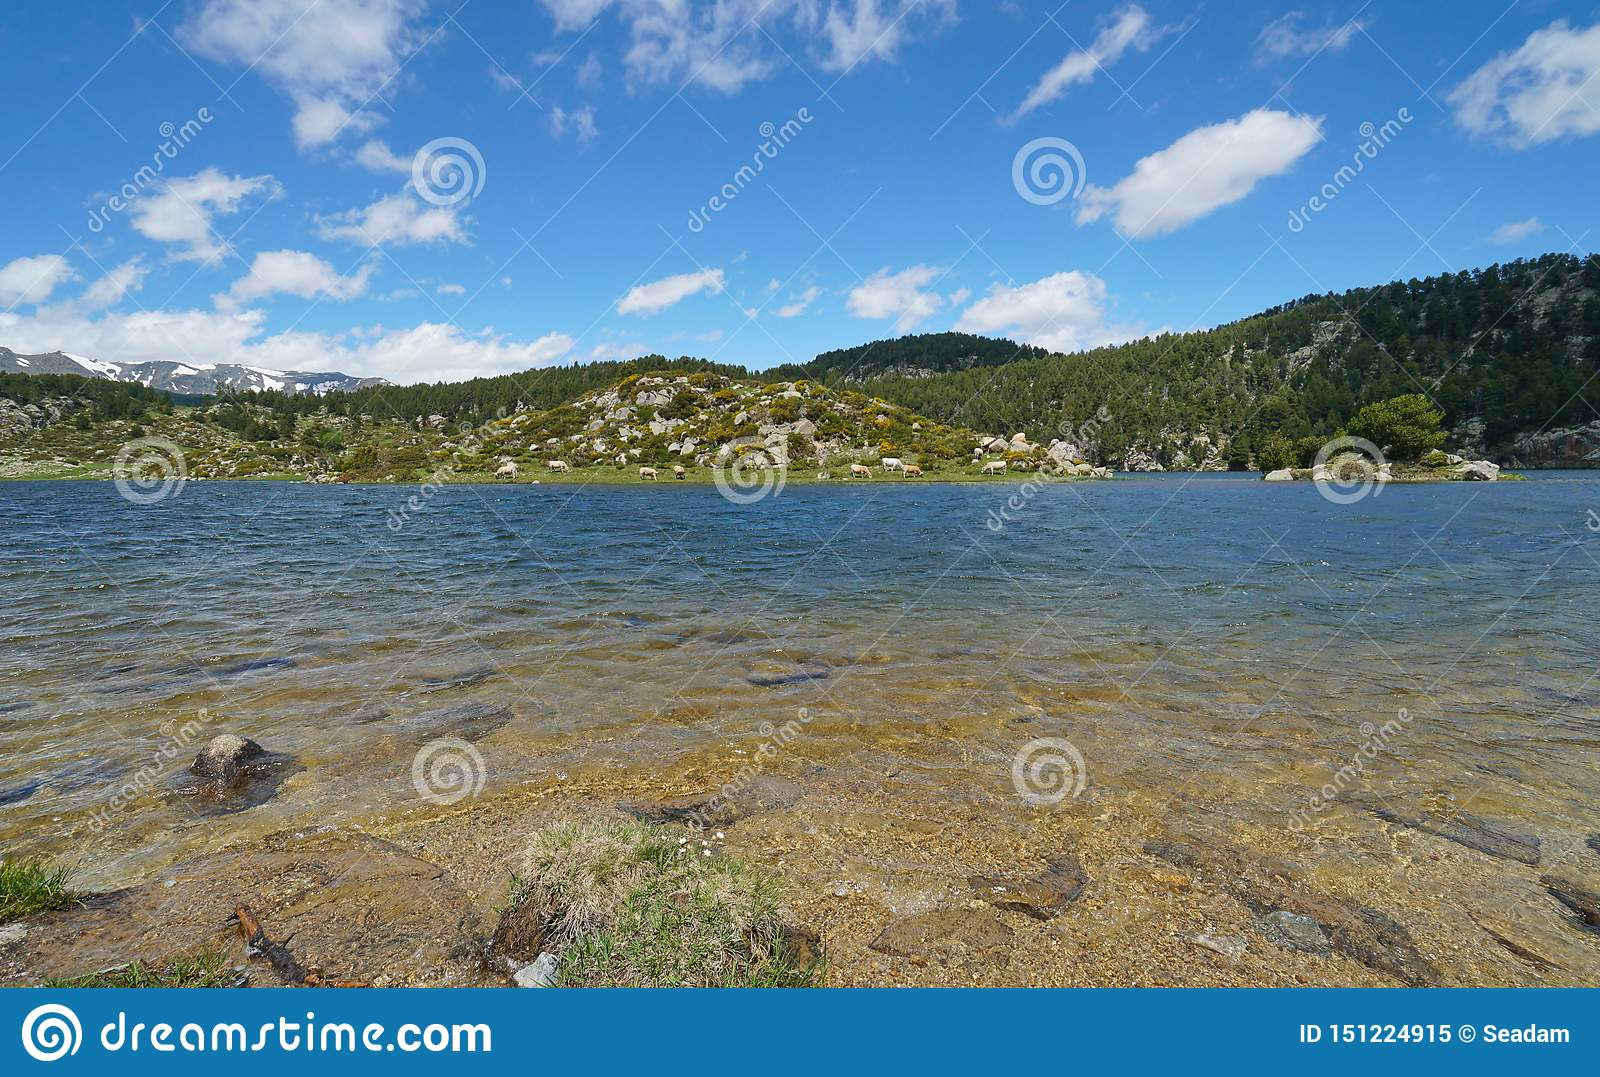 France Mountain Lake Shore With Islet Pyrenees Stock Image